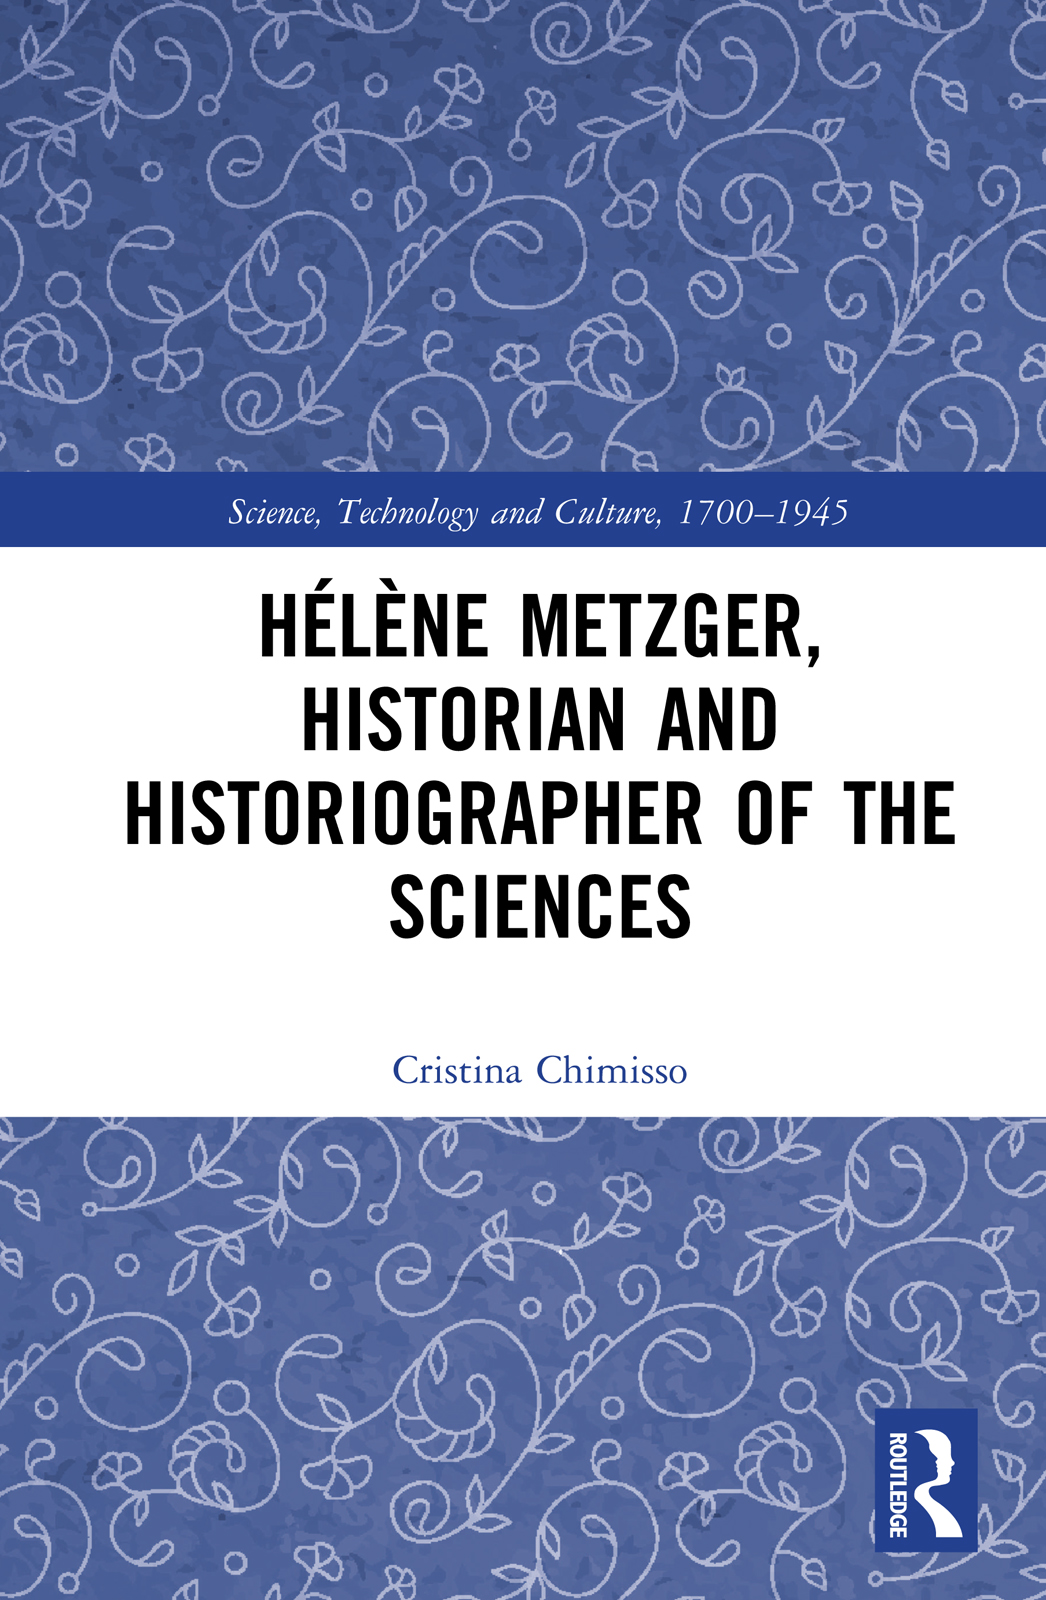 Hélène Metzger: Historian and Historiographer of the Sciences book cover